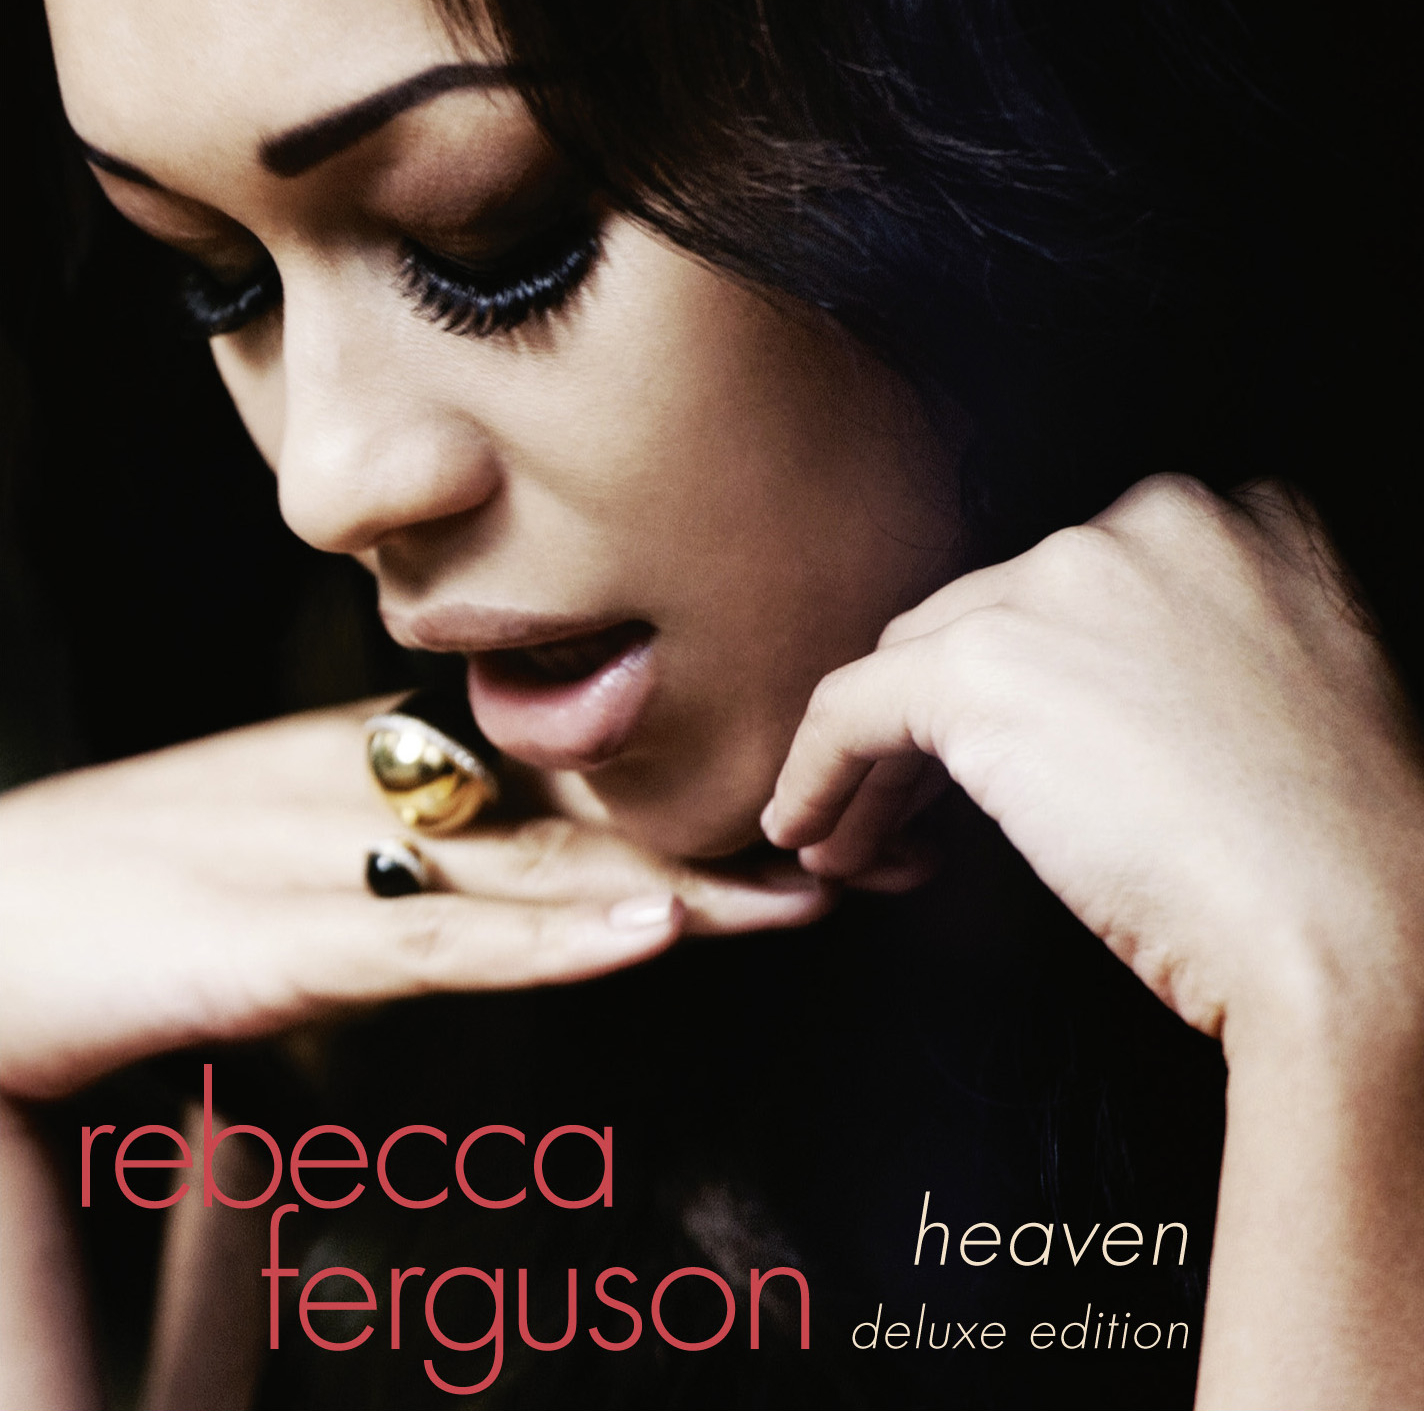 Cover art for the deluxe edition of Rebecca Ferguson's Heaven